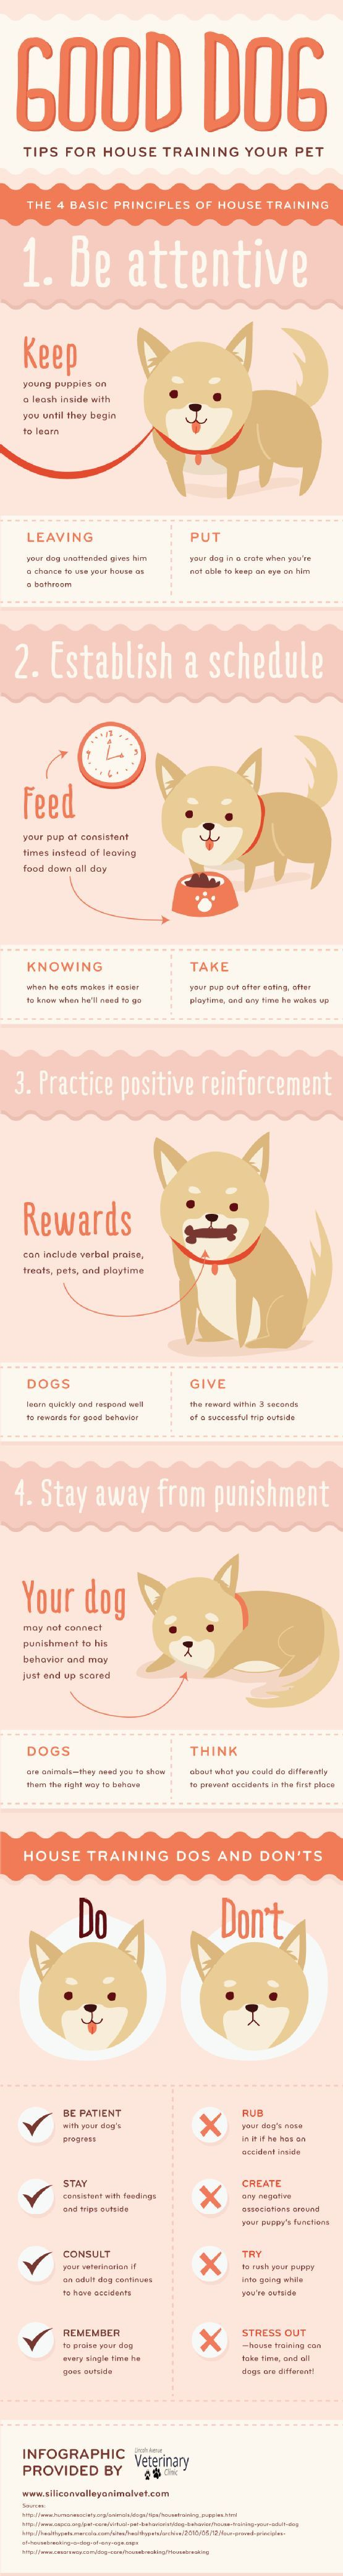 Tips For House Training Your Dog - Browse this infographic for tips on how to house train your dog.